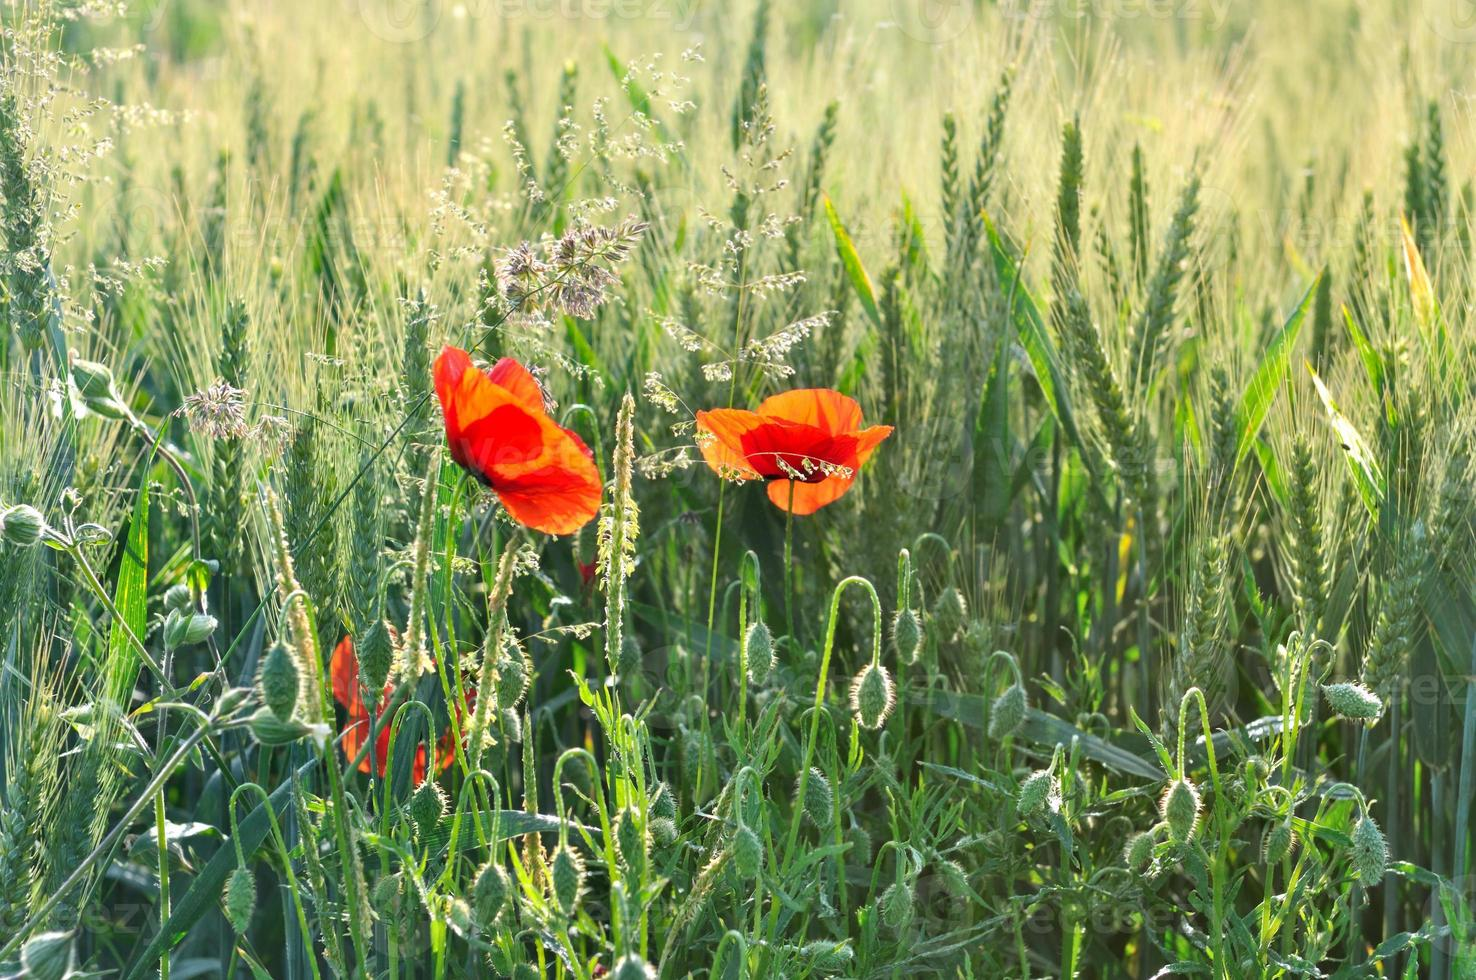 coquelicots dans le champ photo